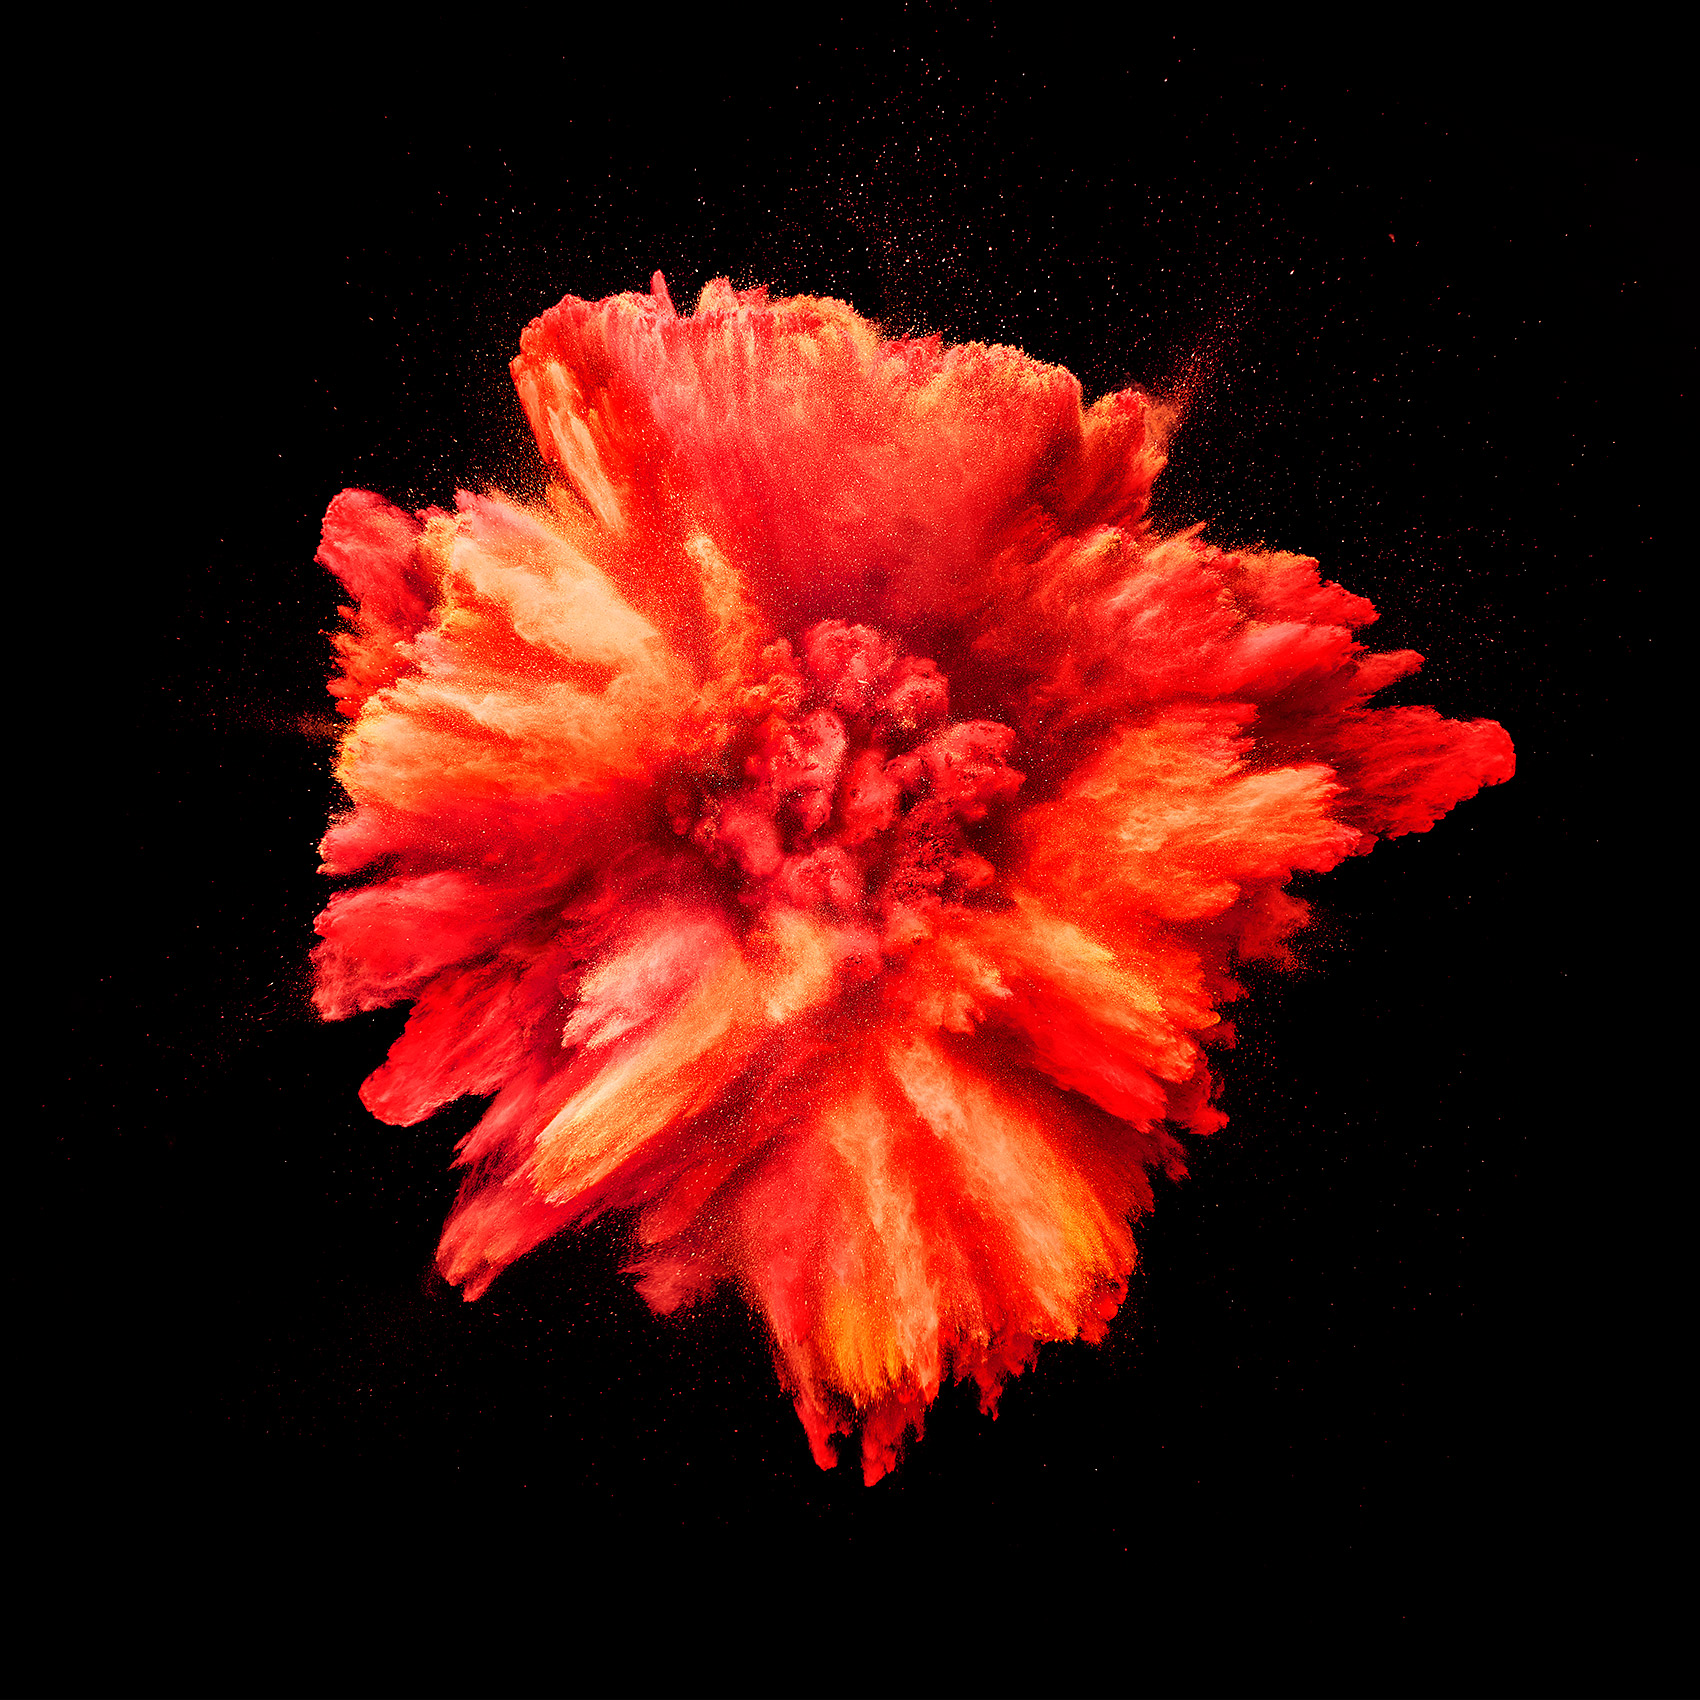 Nick_Rees-Explosion-RED